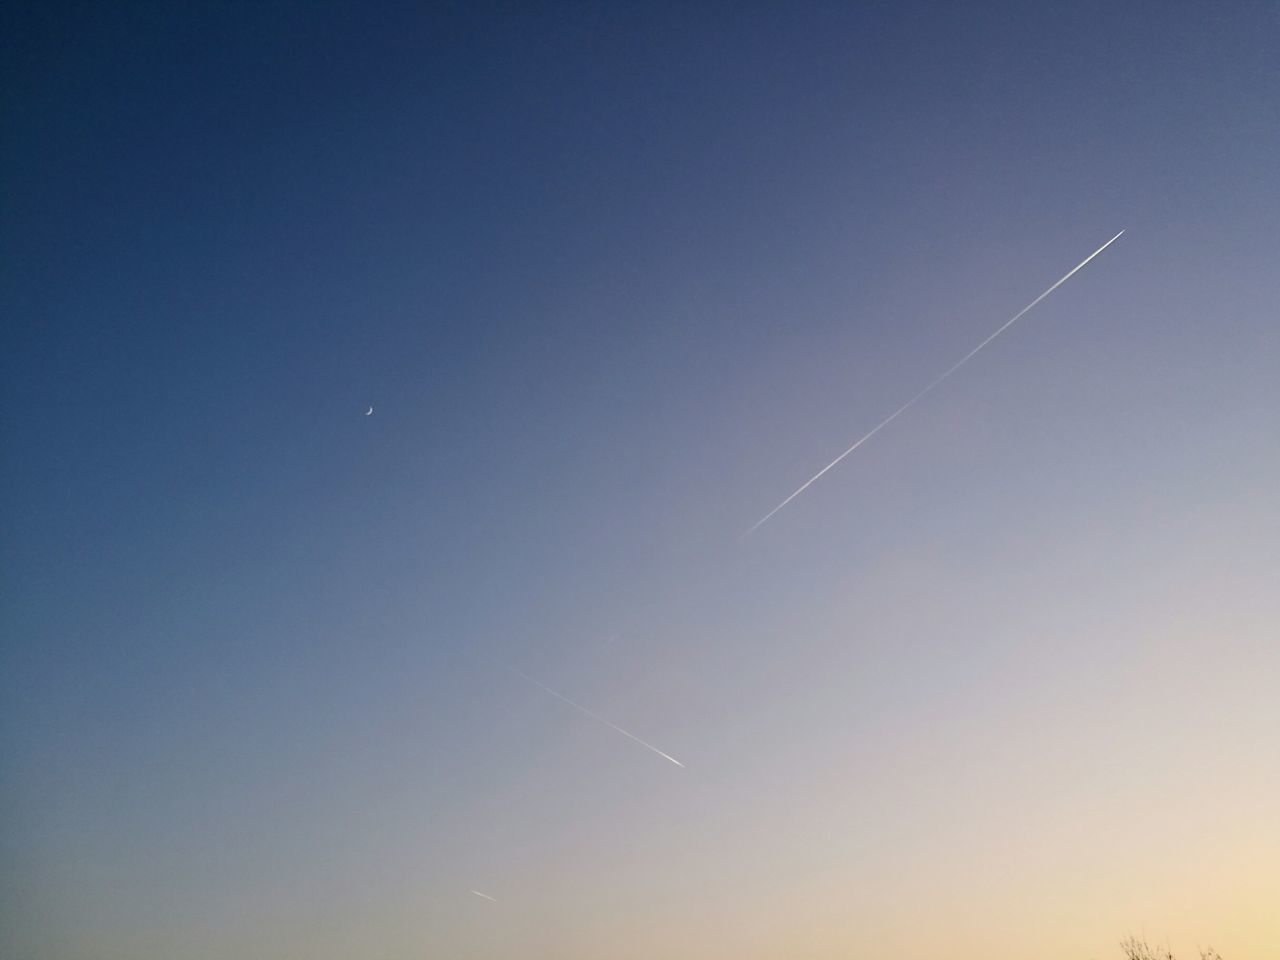 vapor trail, contrail, white, blue, scenics, majestic, beauty in nature, nature, clear sky, tranquil scene, no people, moon, outdoors, sky, day, space